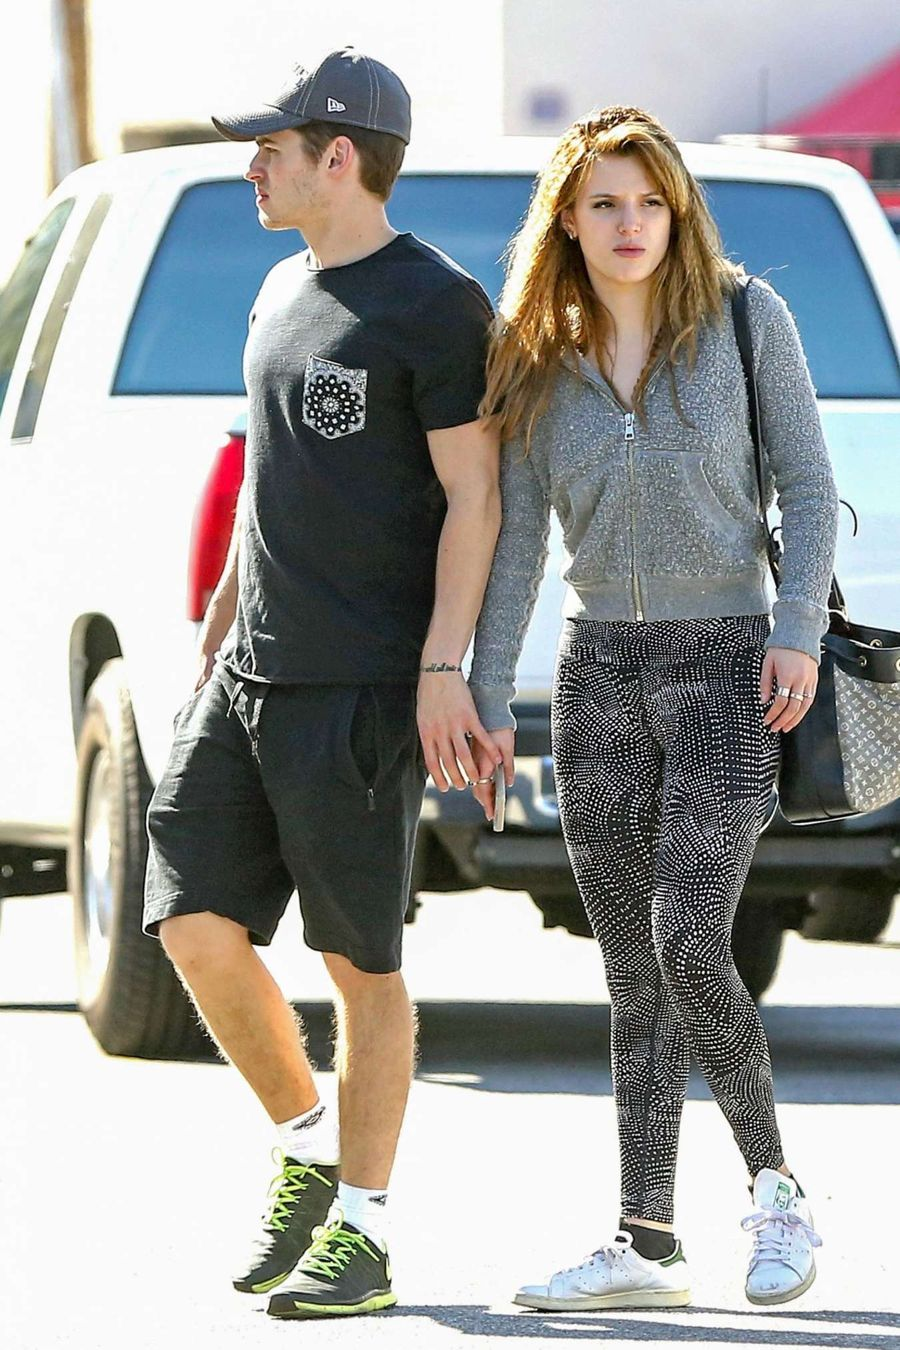 Bella Thorne in a Crop Top Heads to Gym in LA